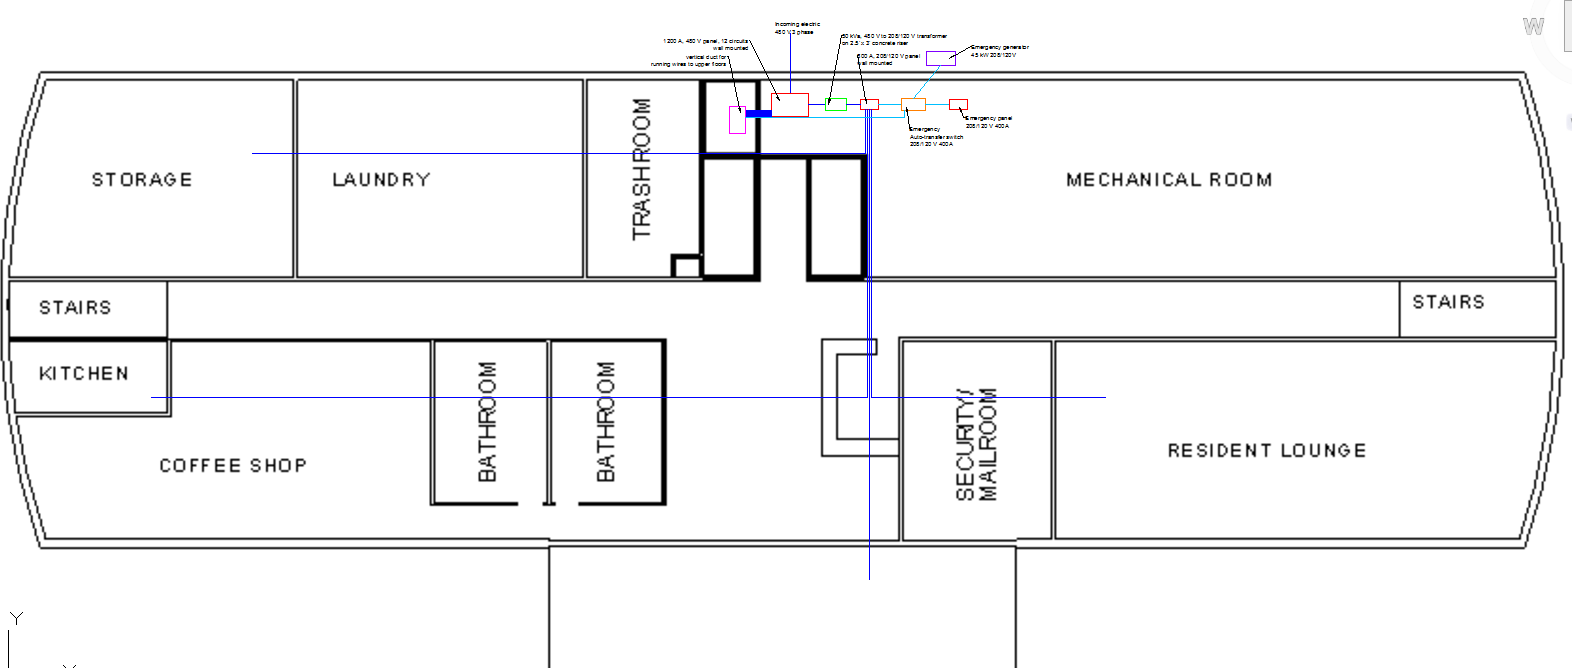 Electrical Single Line Diagram - Graduate Married Student Housing